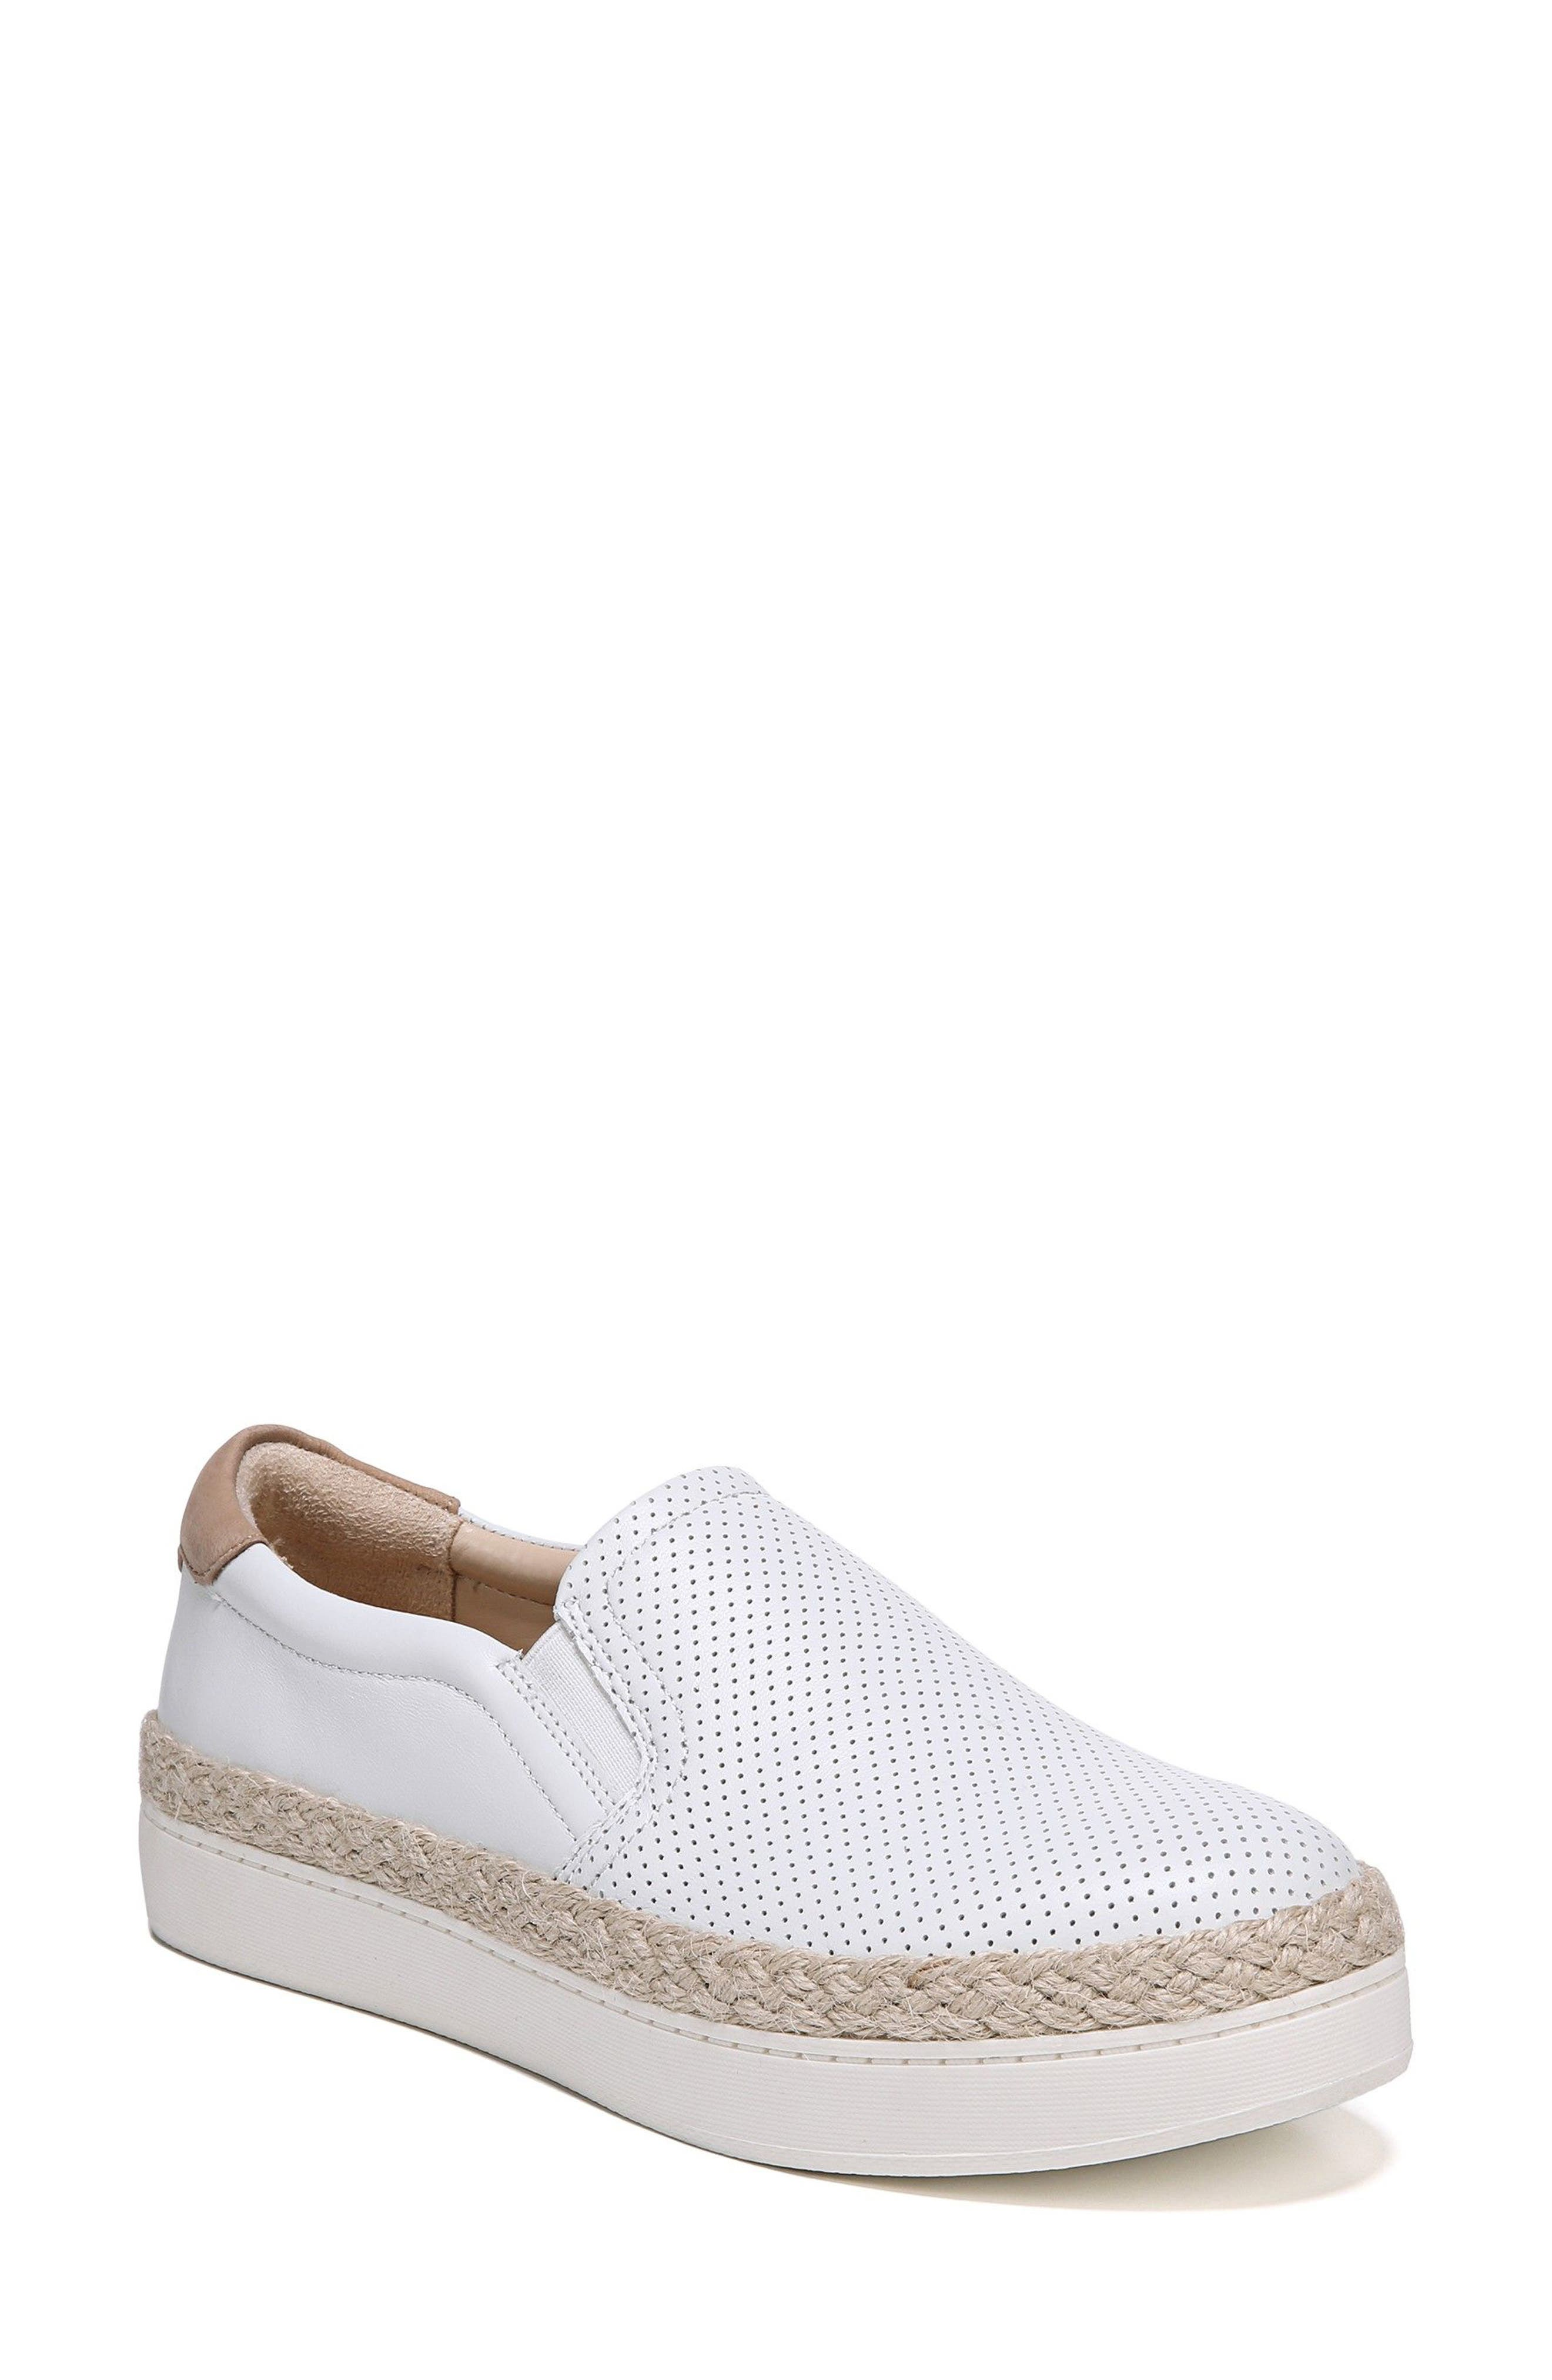 Dr. Scholl's Scout Slip-On Sneaker (Women)